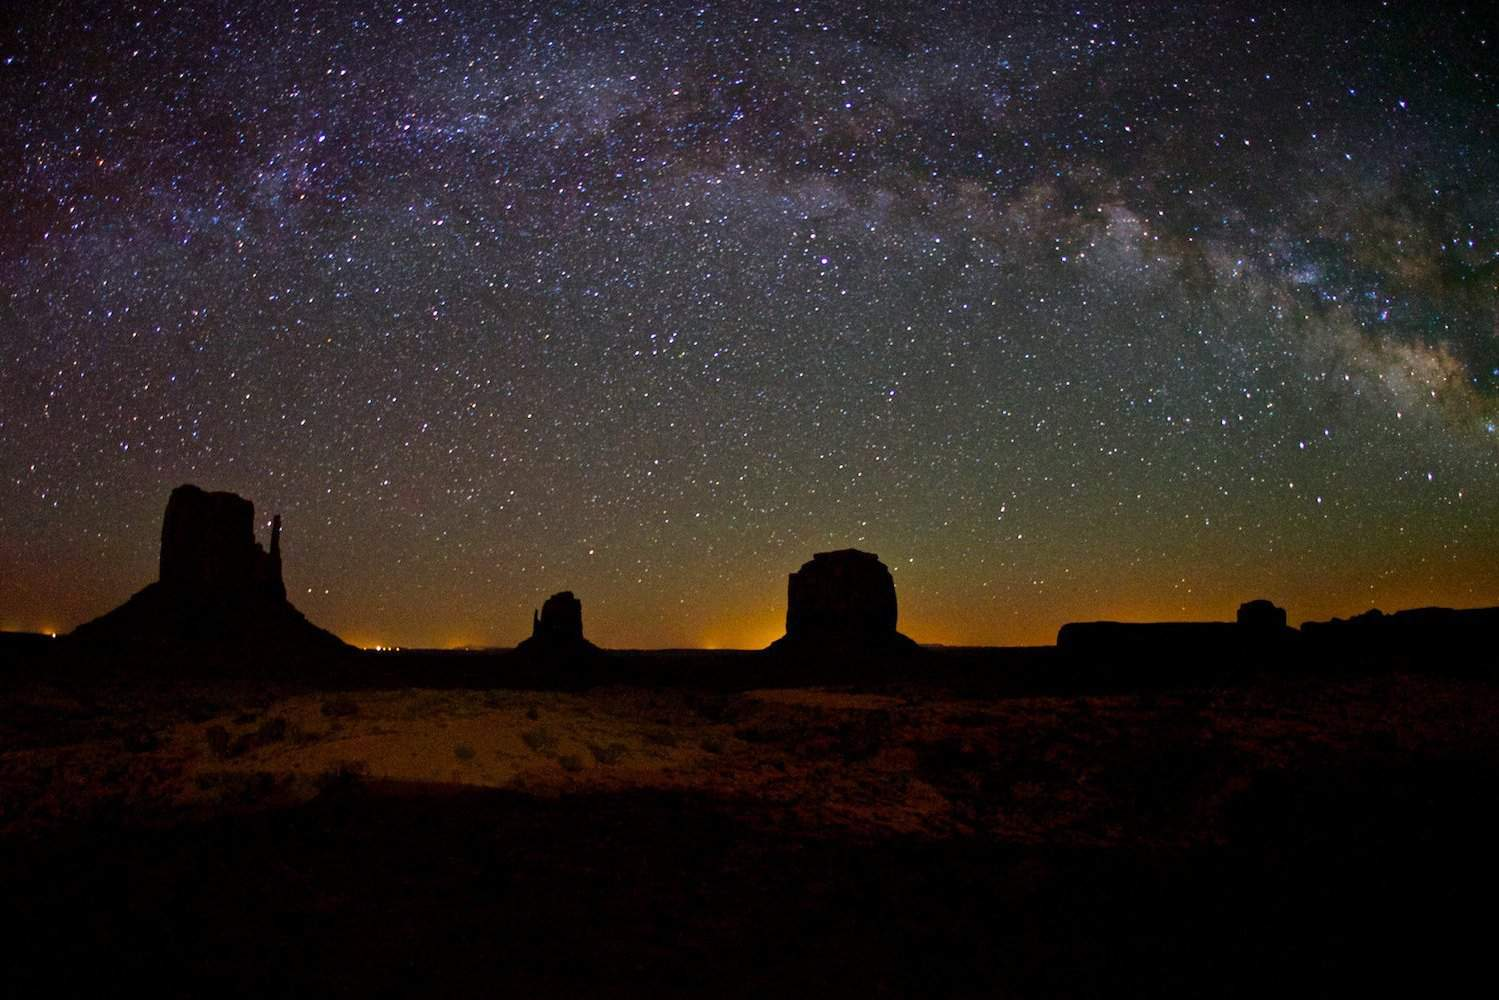 Stargazing in Airzona - Monument Valley - Chao Yen via Flickr